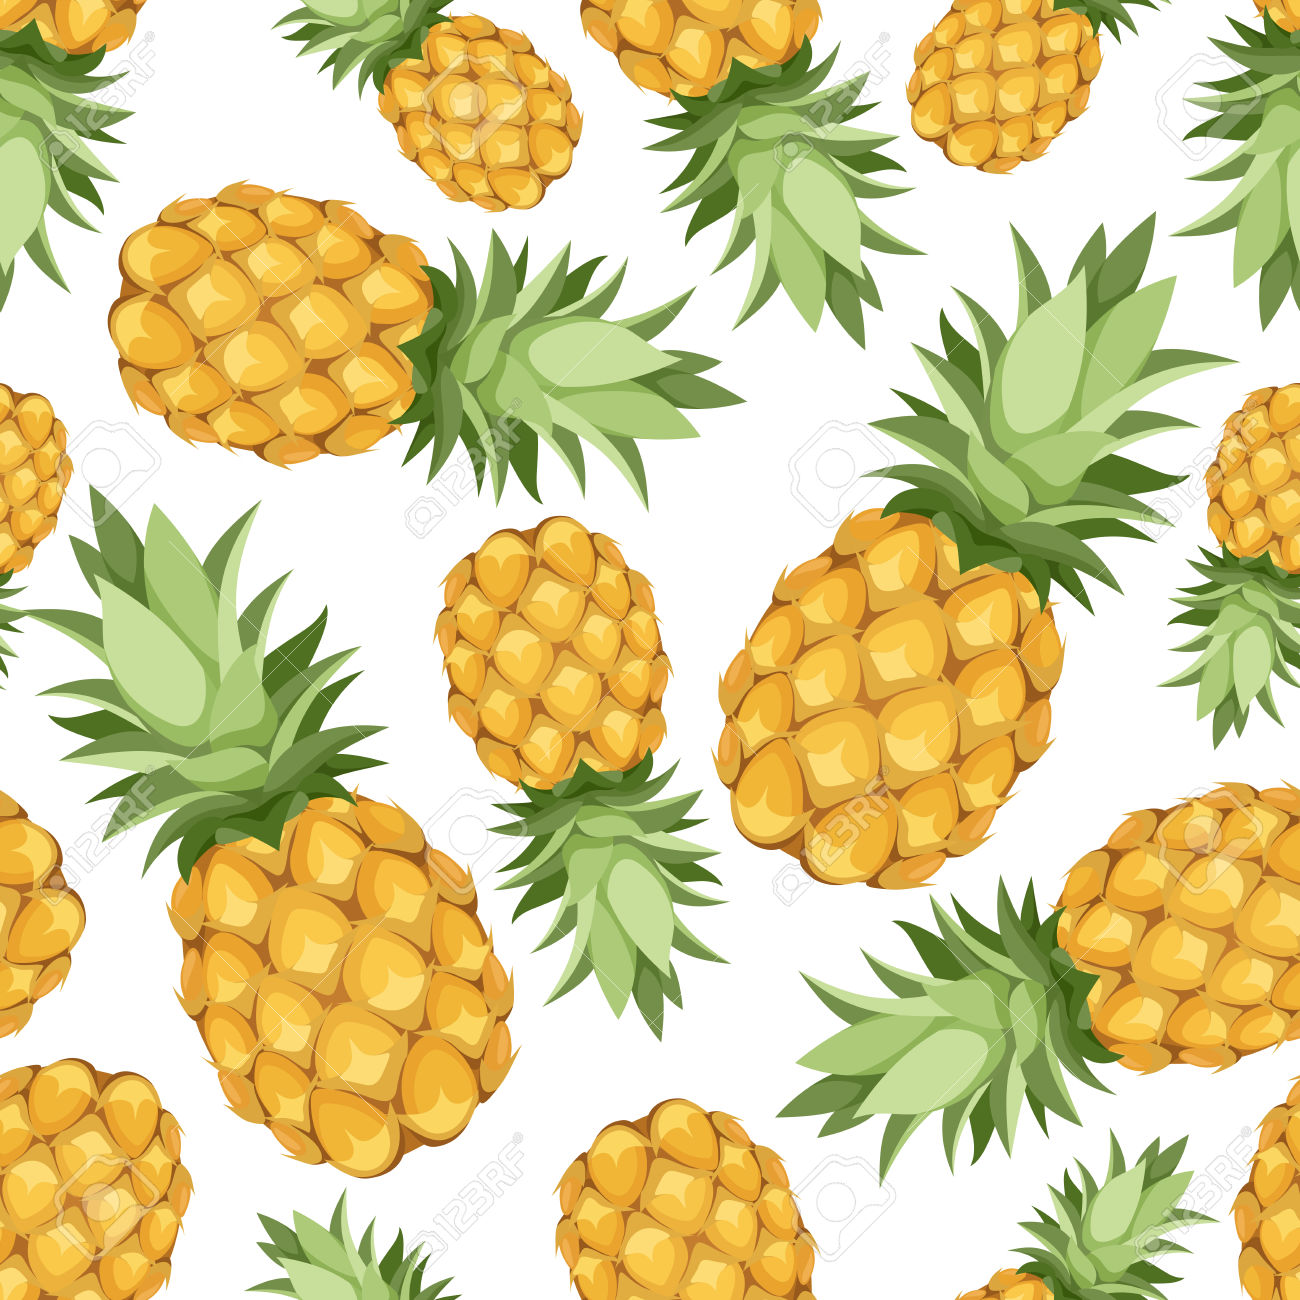 Texture clipart pineapple #2